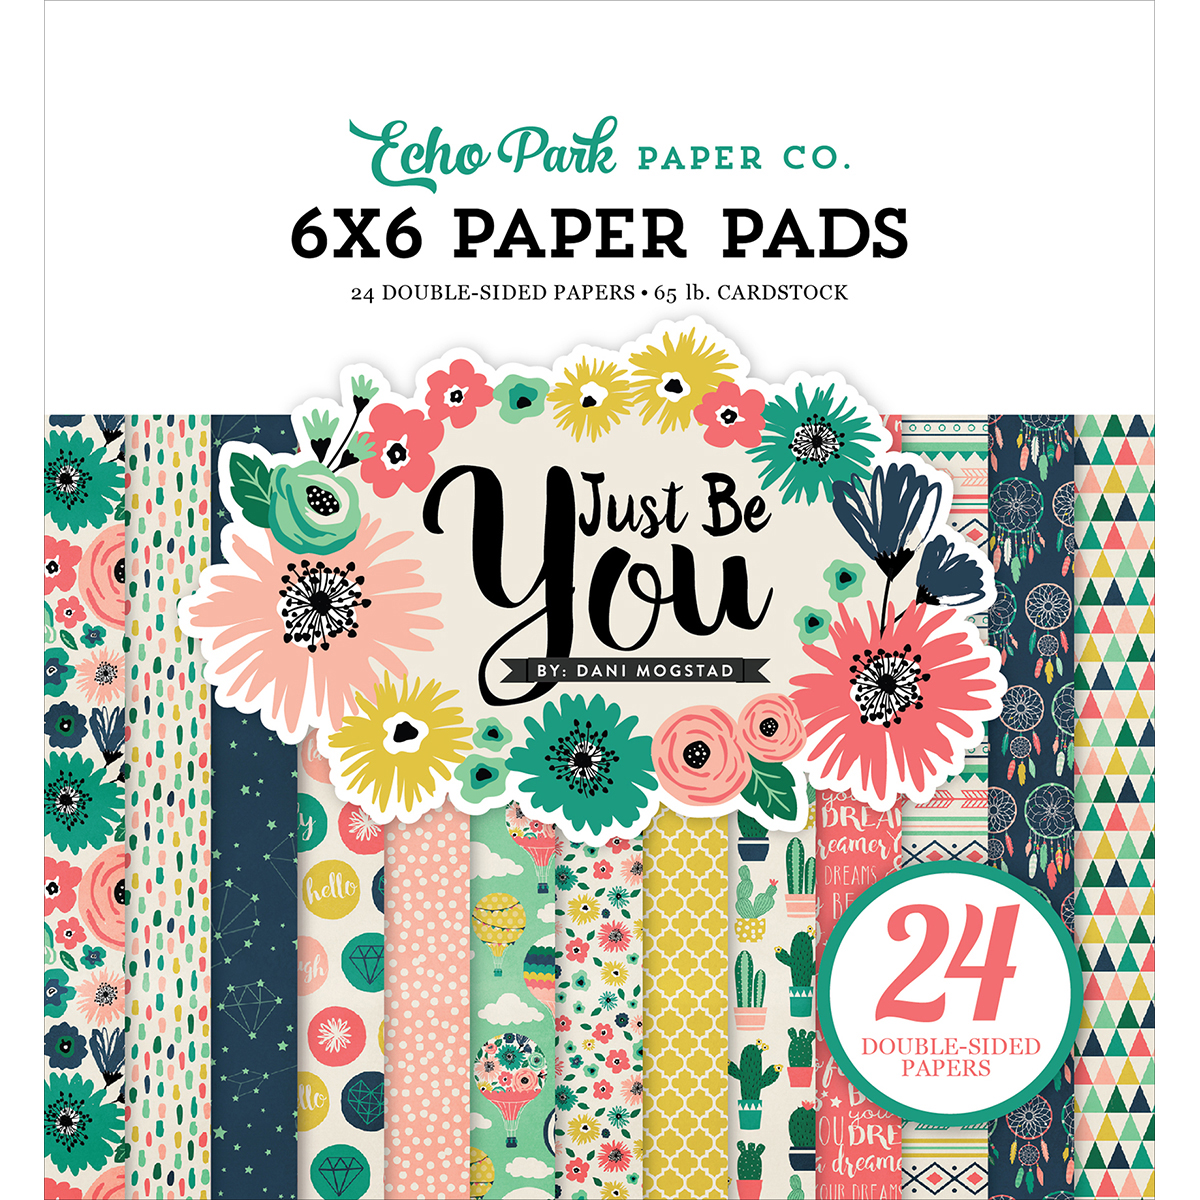 Echo Park Double-Sided Paper Pad 6X6 24/Pkg-Just Be You, 12 Designs/2 Each